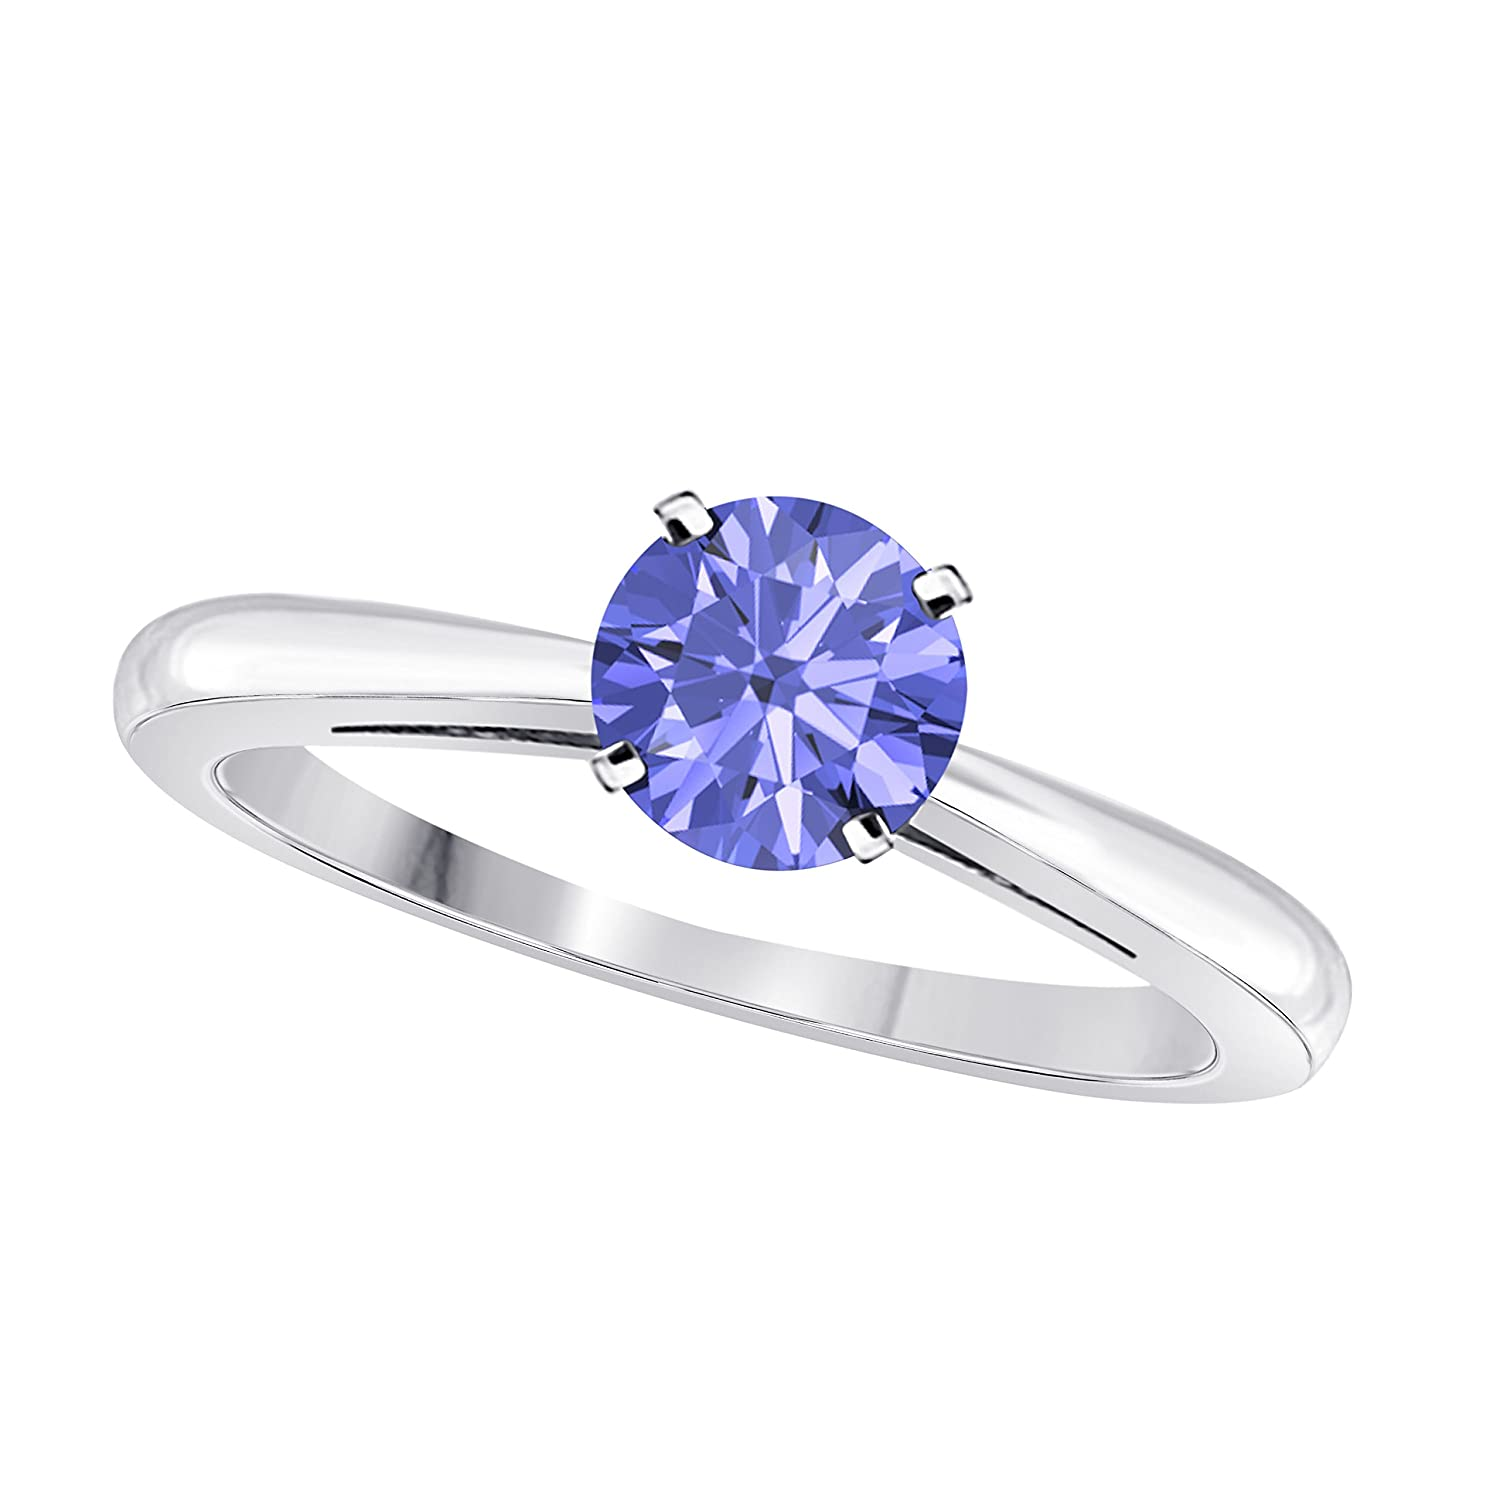 DS Jewels Birthstone Ring 14k White Gold Plated .925 Sterling Silver 6mm CZ Multi-Color Round Cut 4-Prong Set Solitair Engagement Rings Sizes 4 to 11